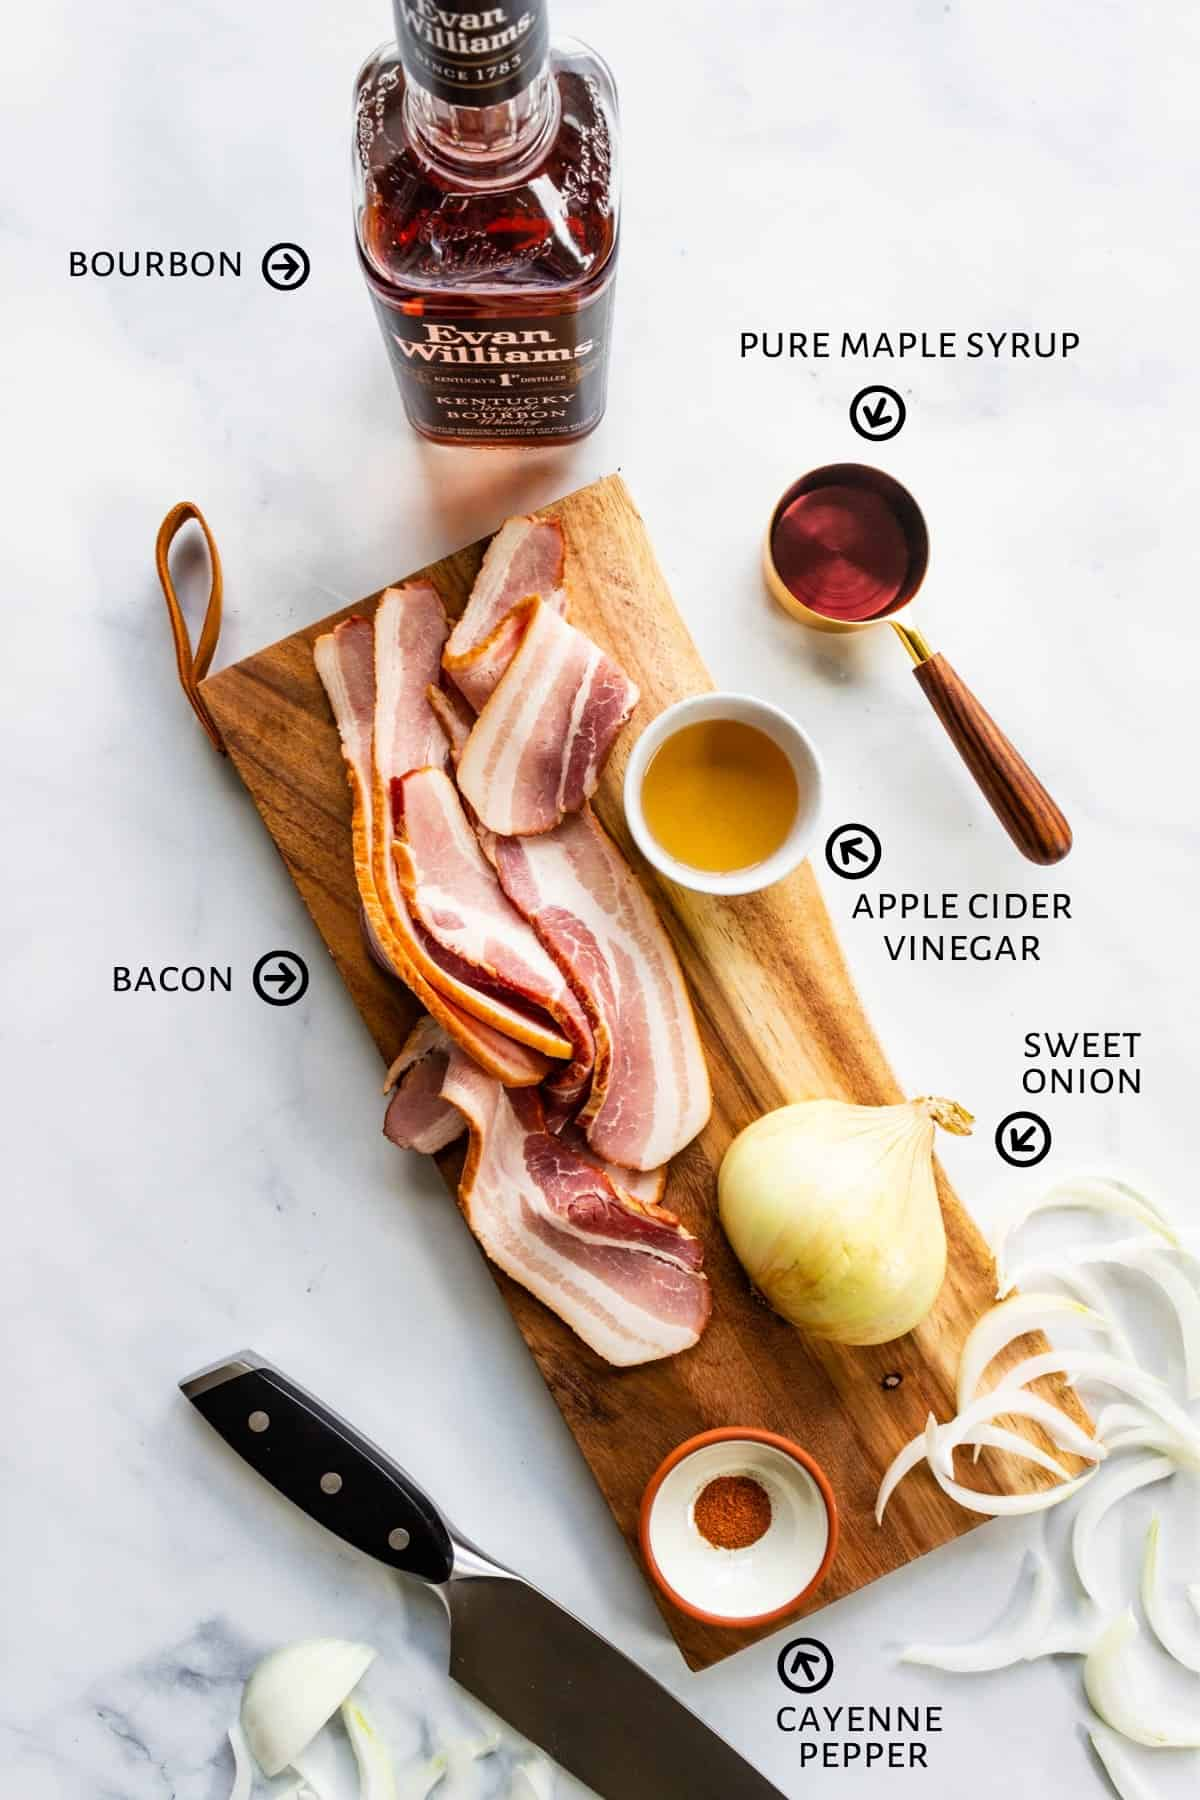 Strips of bacon are laid out on a cutting board with sliced onions. A bottle of bourbon, a pinch bowl of cayenne, a small cup of apple cider vinegar, and a measuring cup with maple syrup sit around the cutting board.